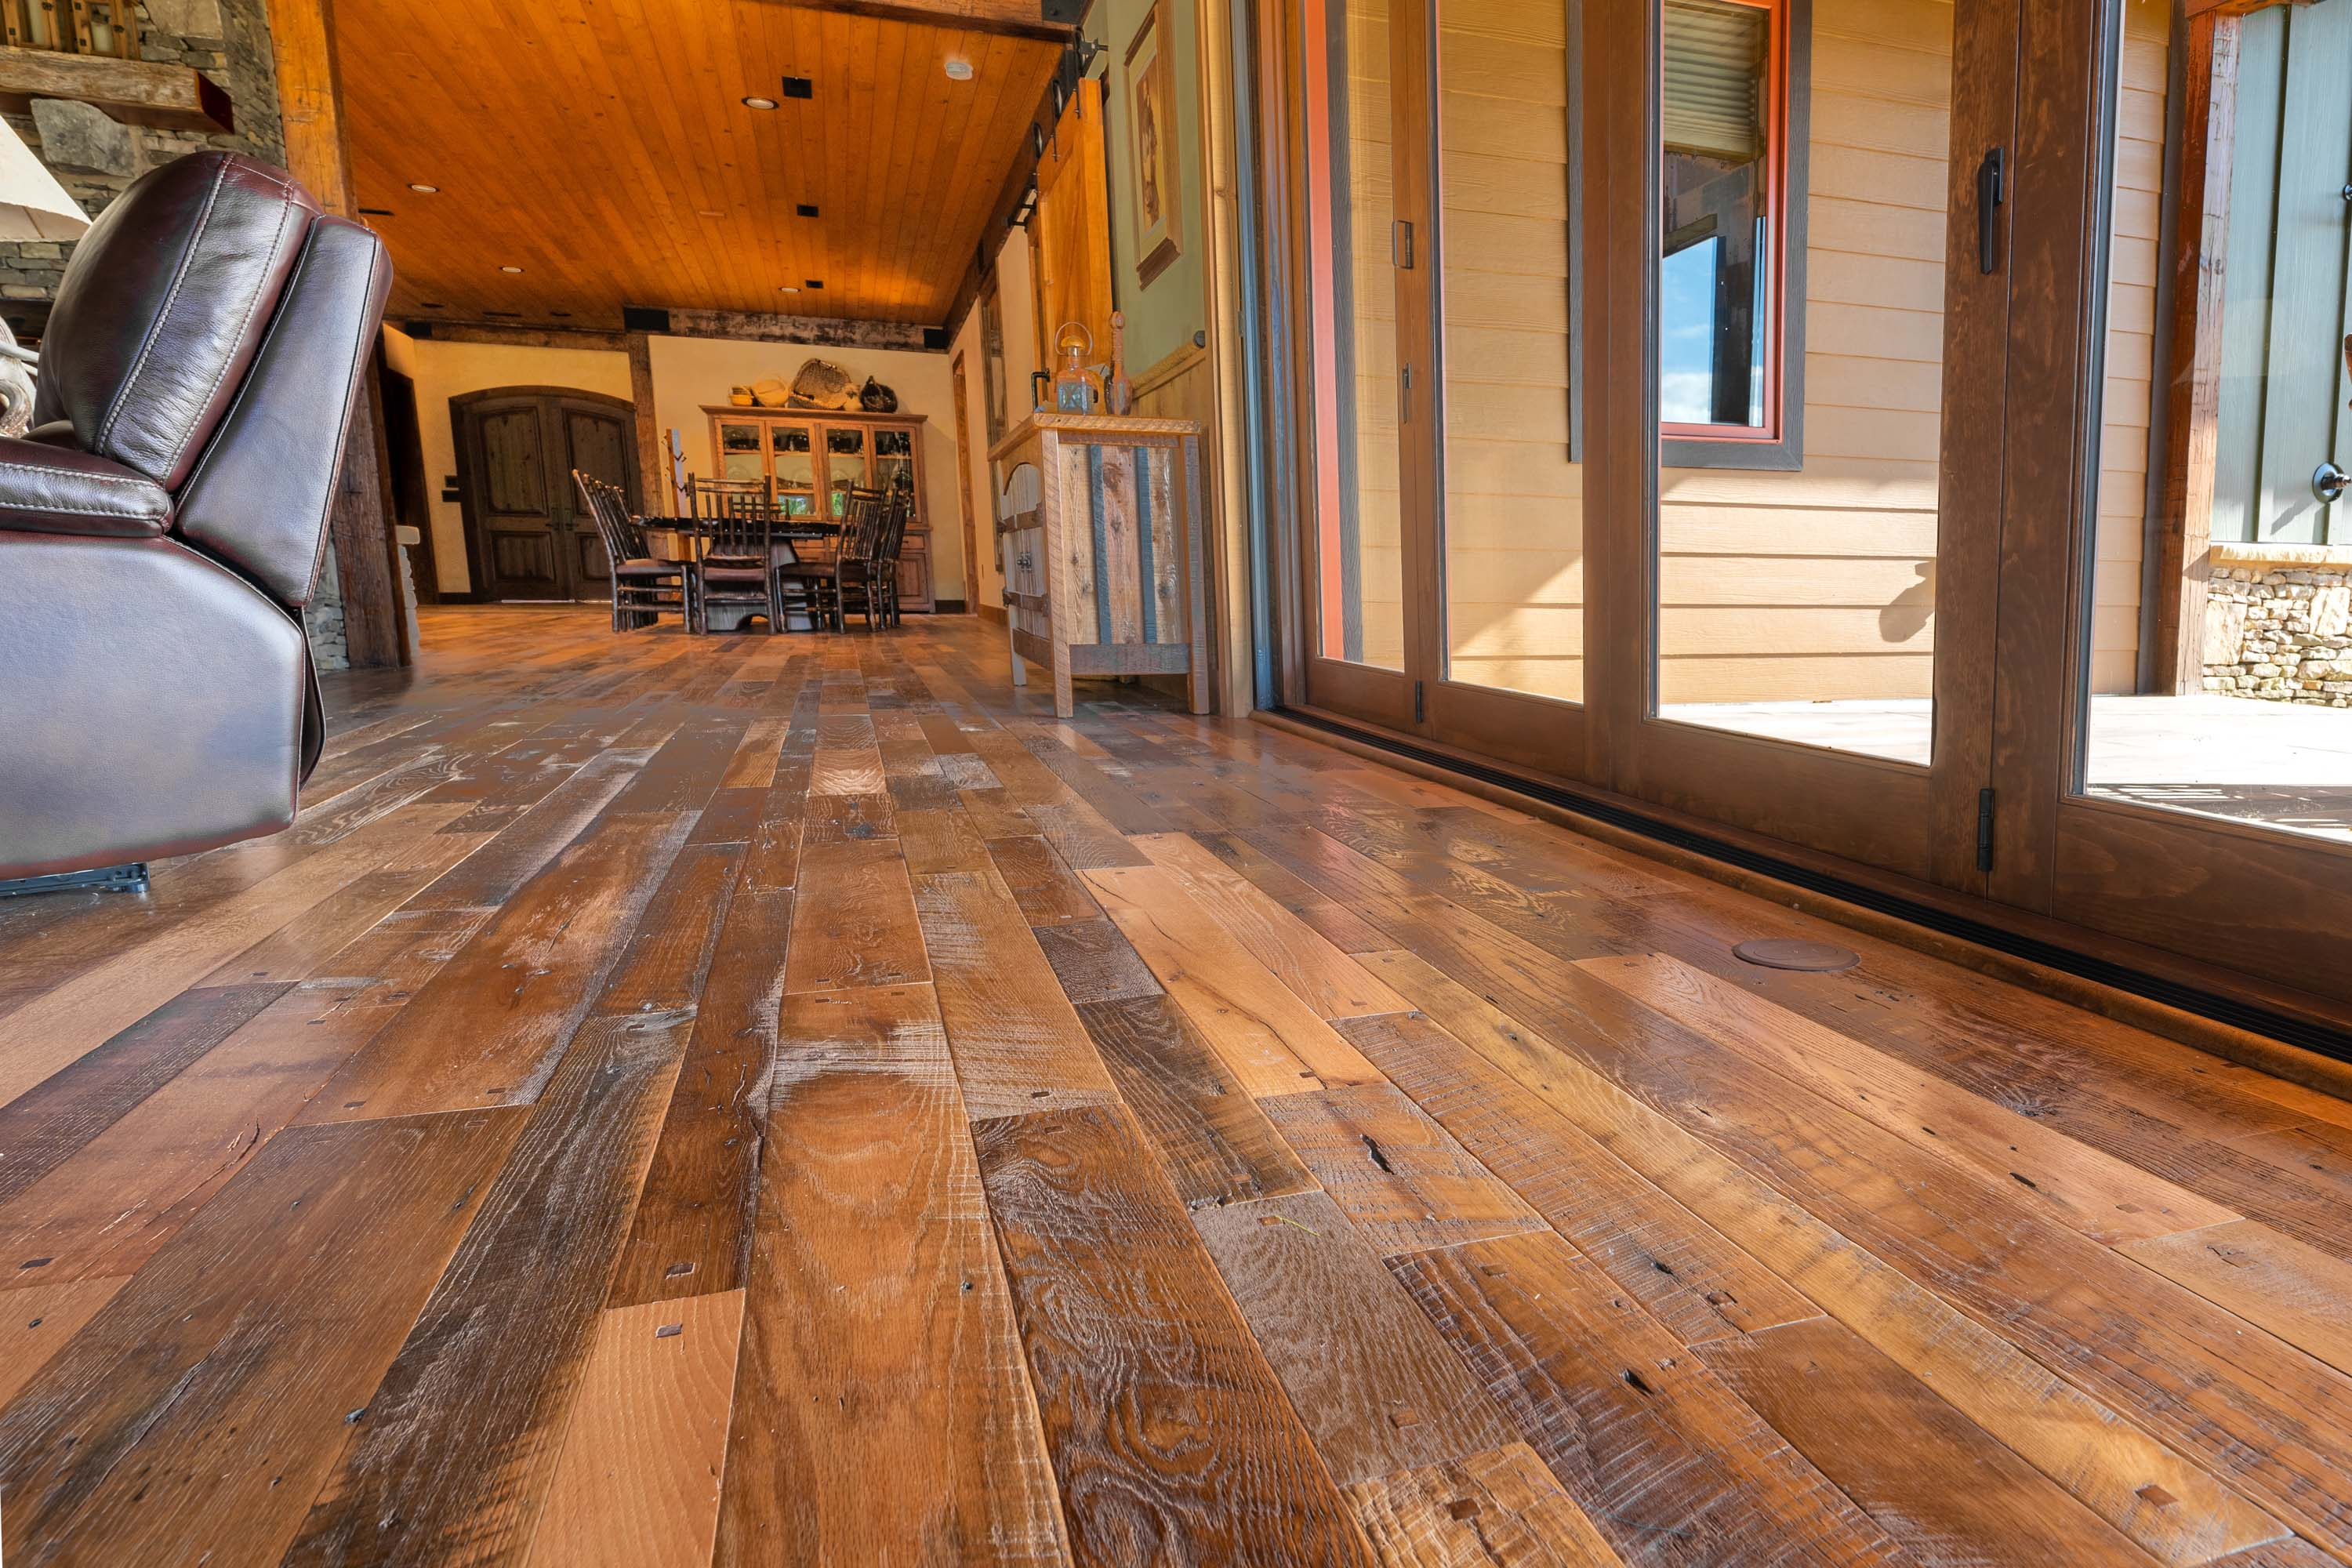 A living room with the glass doors near by in a cabin style house with reclaimed americana reclaimed wood flooring by Tennessee Wood Flooring. This hardwood floor is authentically made in the east tennessee area.